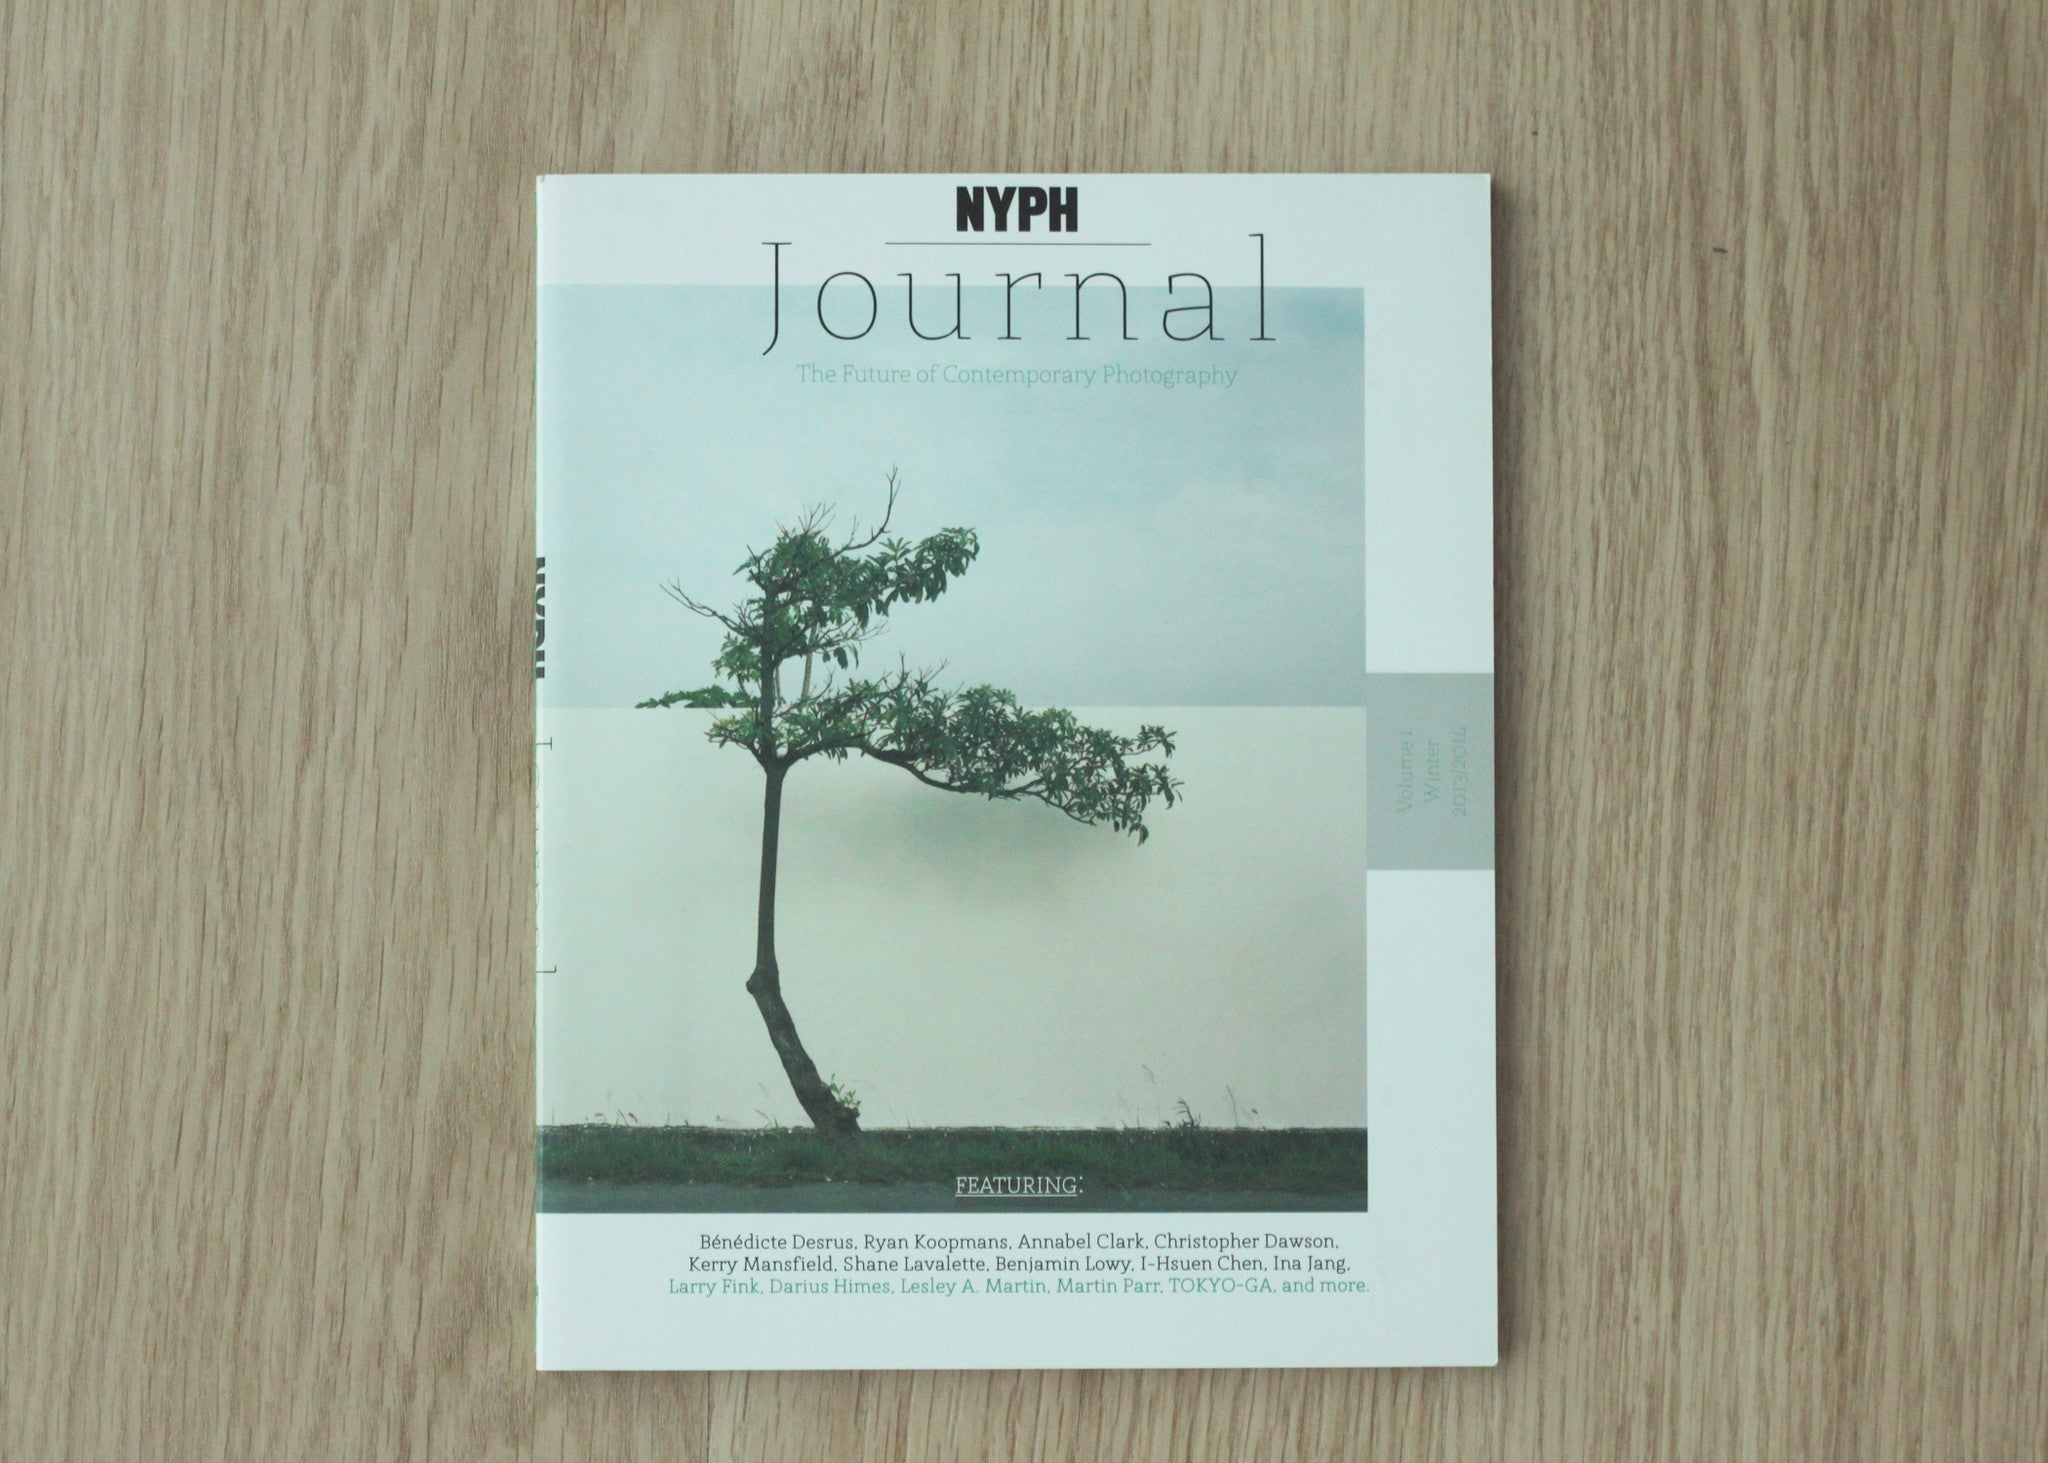 NYPH Journal:  The Future of Contemporary Photography